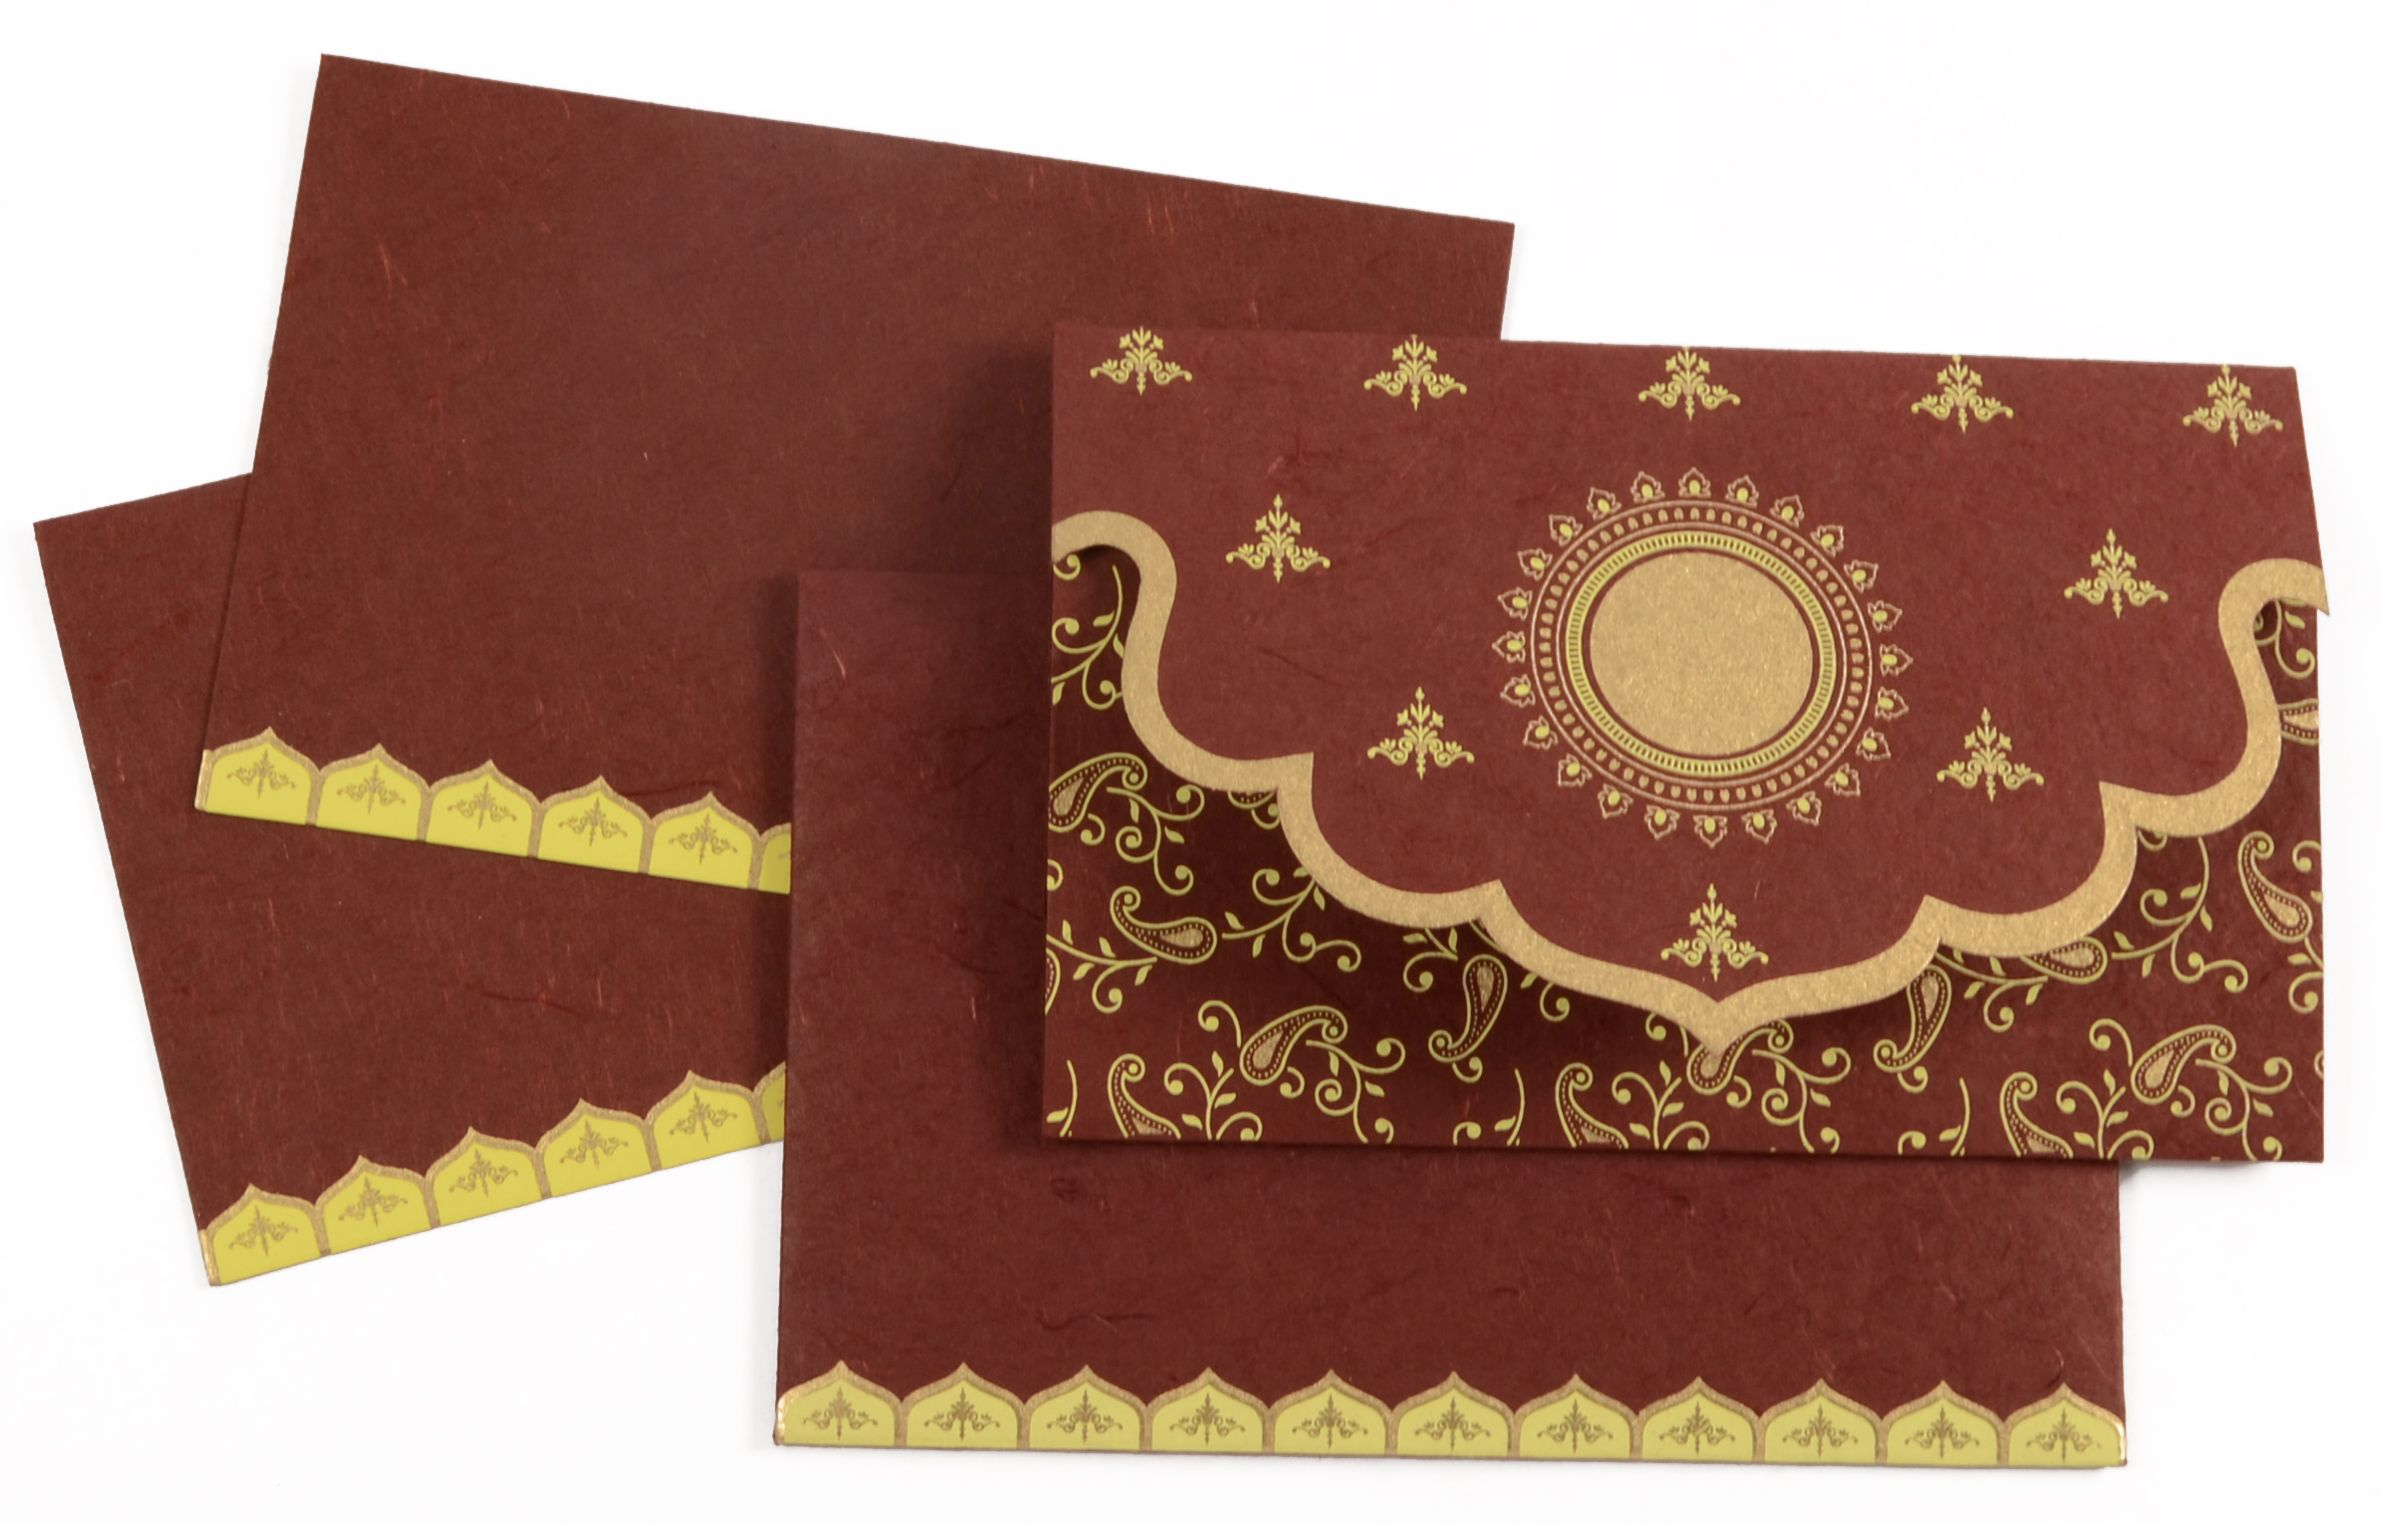 invitation inspiration | Indian wedding | Pinterest | Indian wedding ...